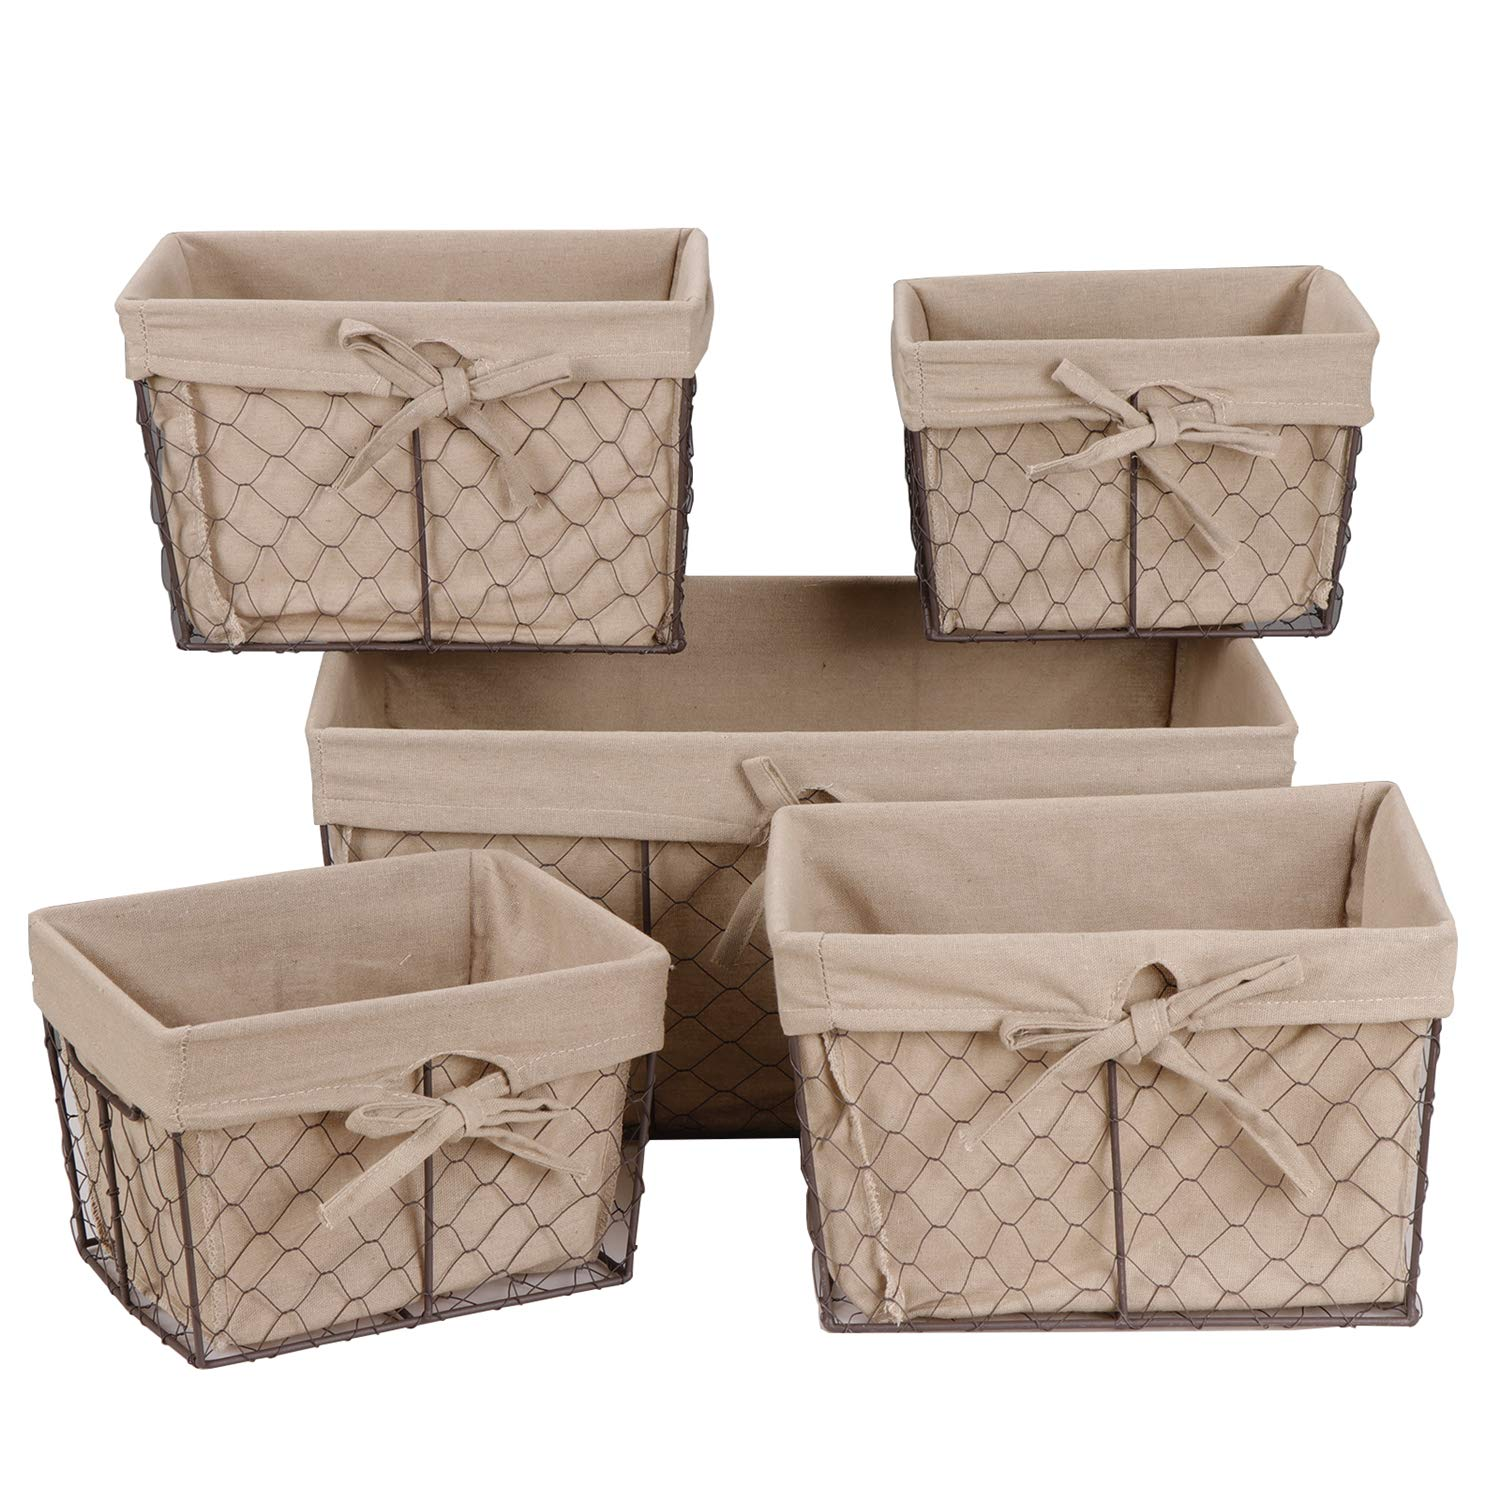 F2C Home Decor Set of 5 Vintage Toy Fruit Clothes Metal Chicken Wire Storage Basket Organizer W/Removable Fabric Liner for Bathroom Kitchen Office Nursery Laundry Bedroom Shelf by F2C (Image #1)